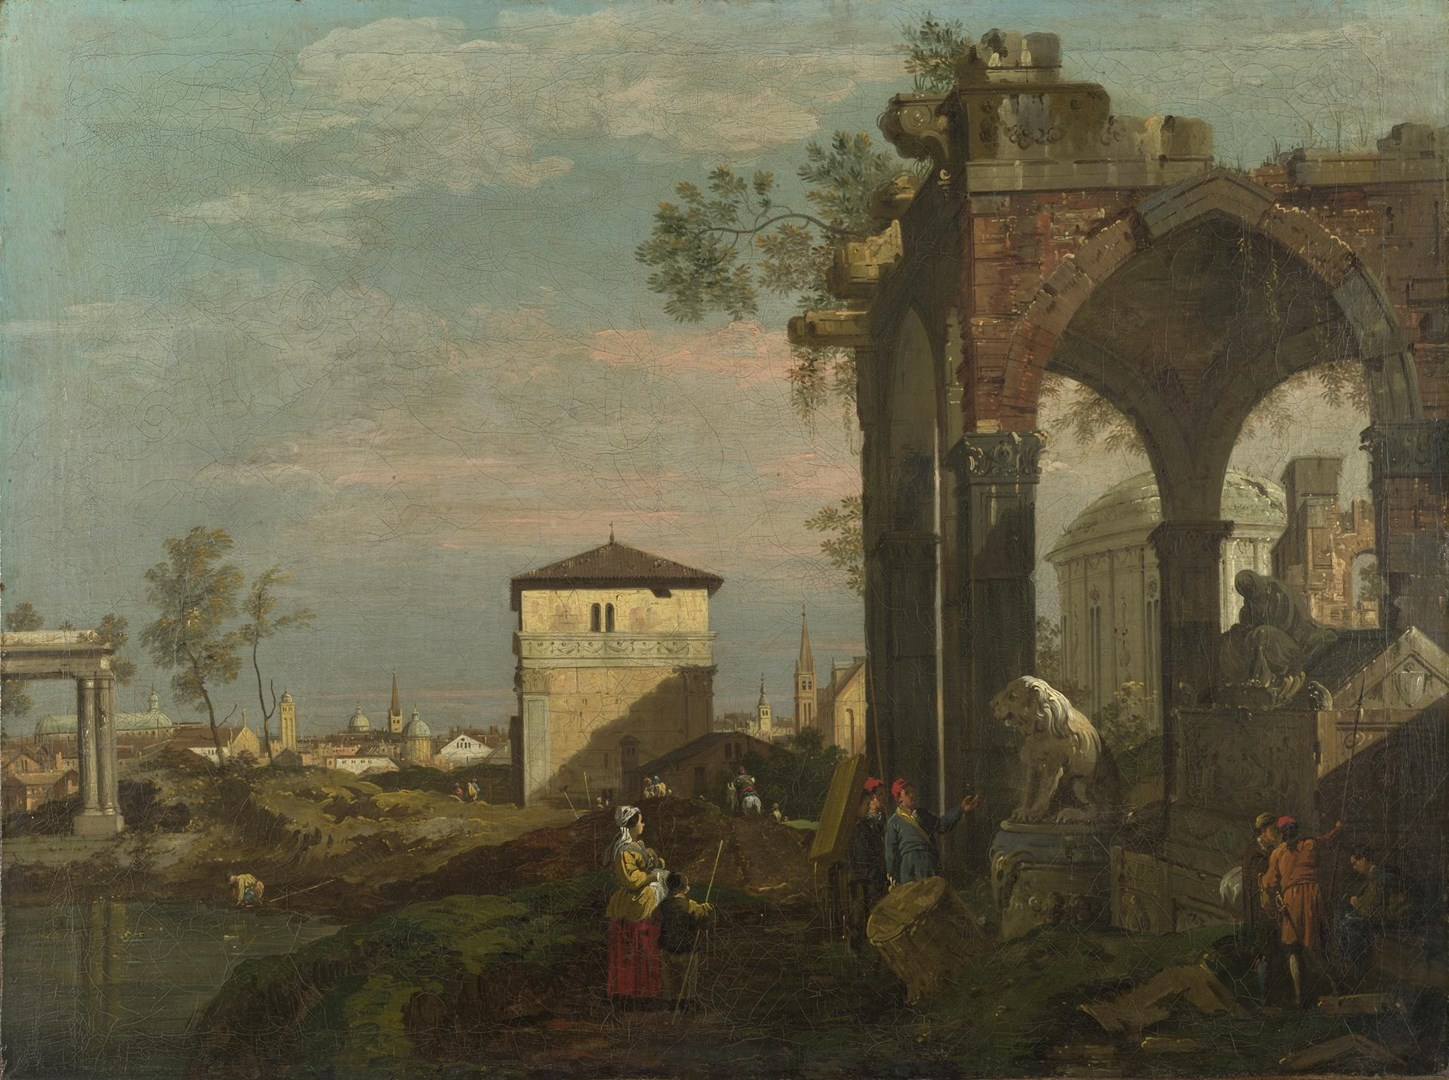 A Caprice Landscape with Ruins by Style of Bernardo Bellotto